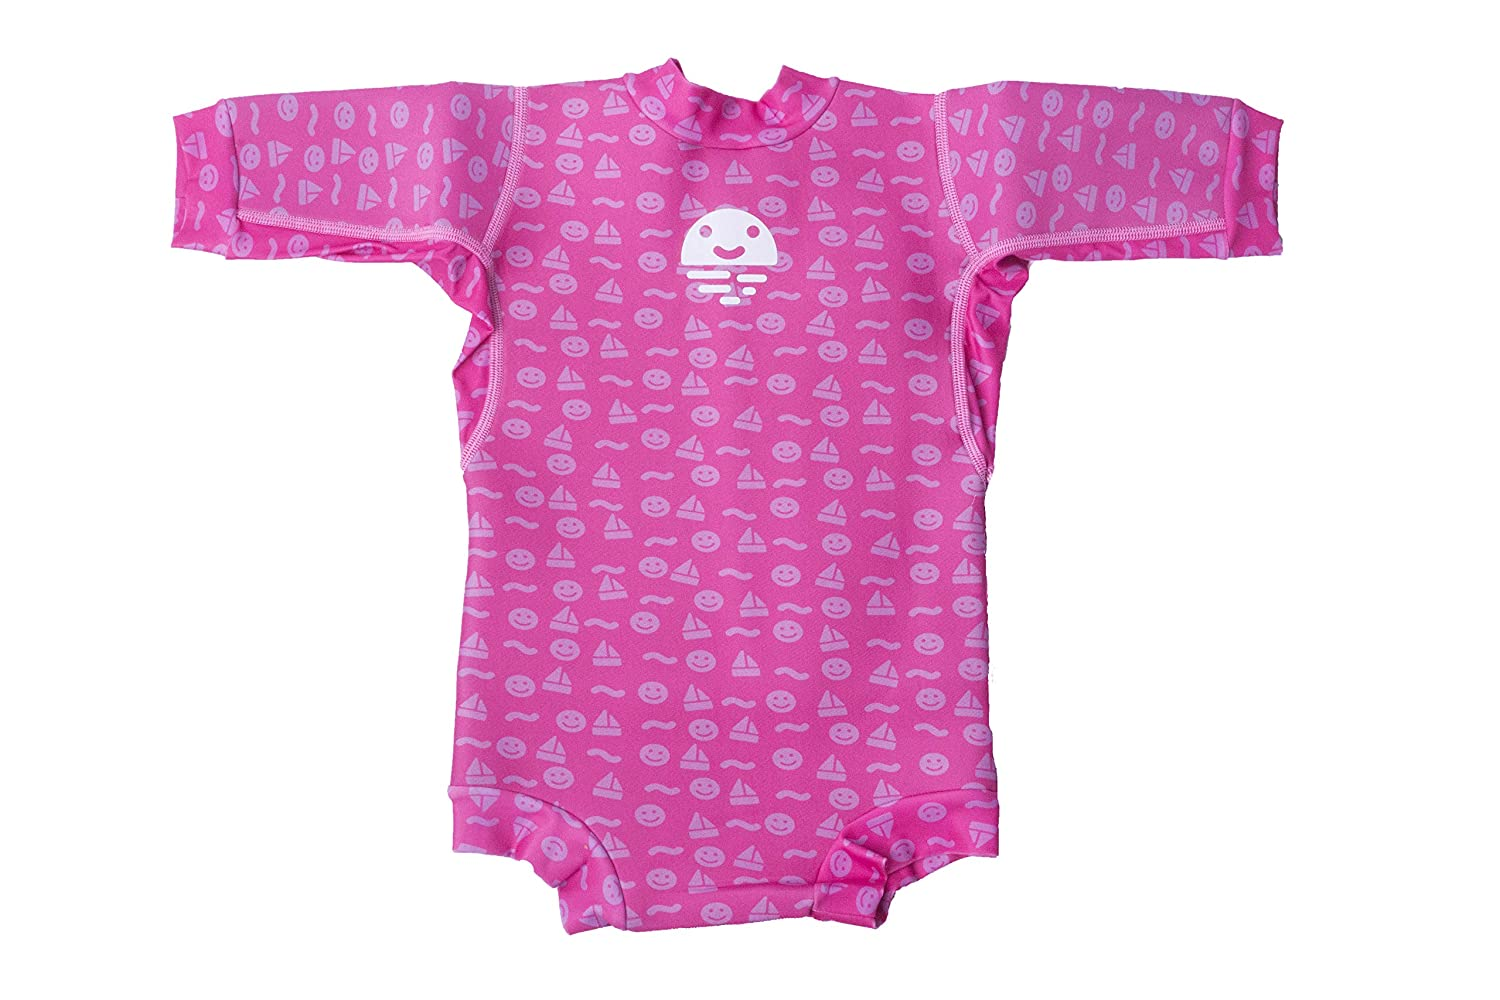 Orby Smiley Swimi Gymi Warm Neoprene Safe Baby Pool Float Clothing Swimming Wet Suit Pink 3-9 Months